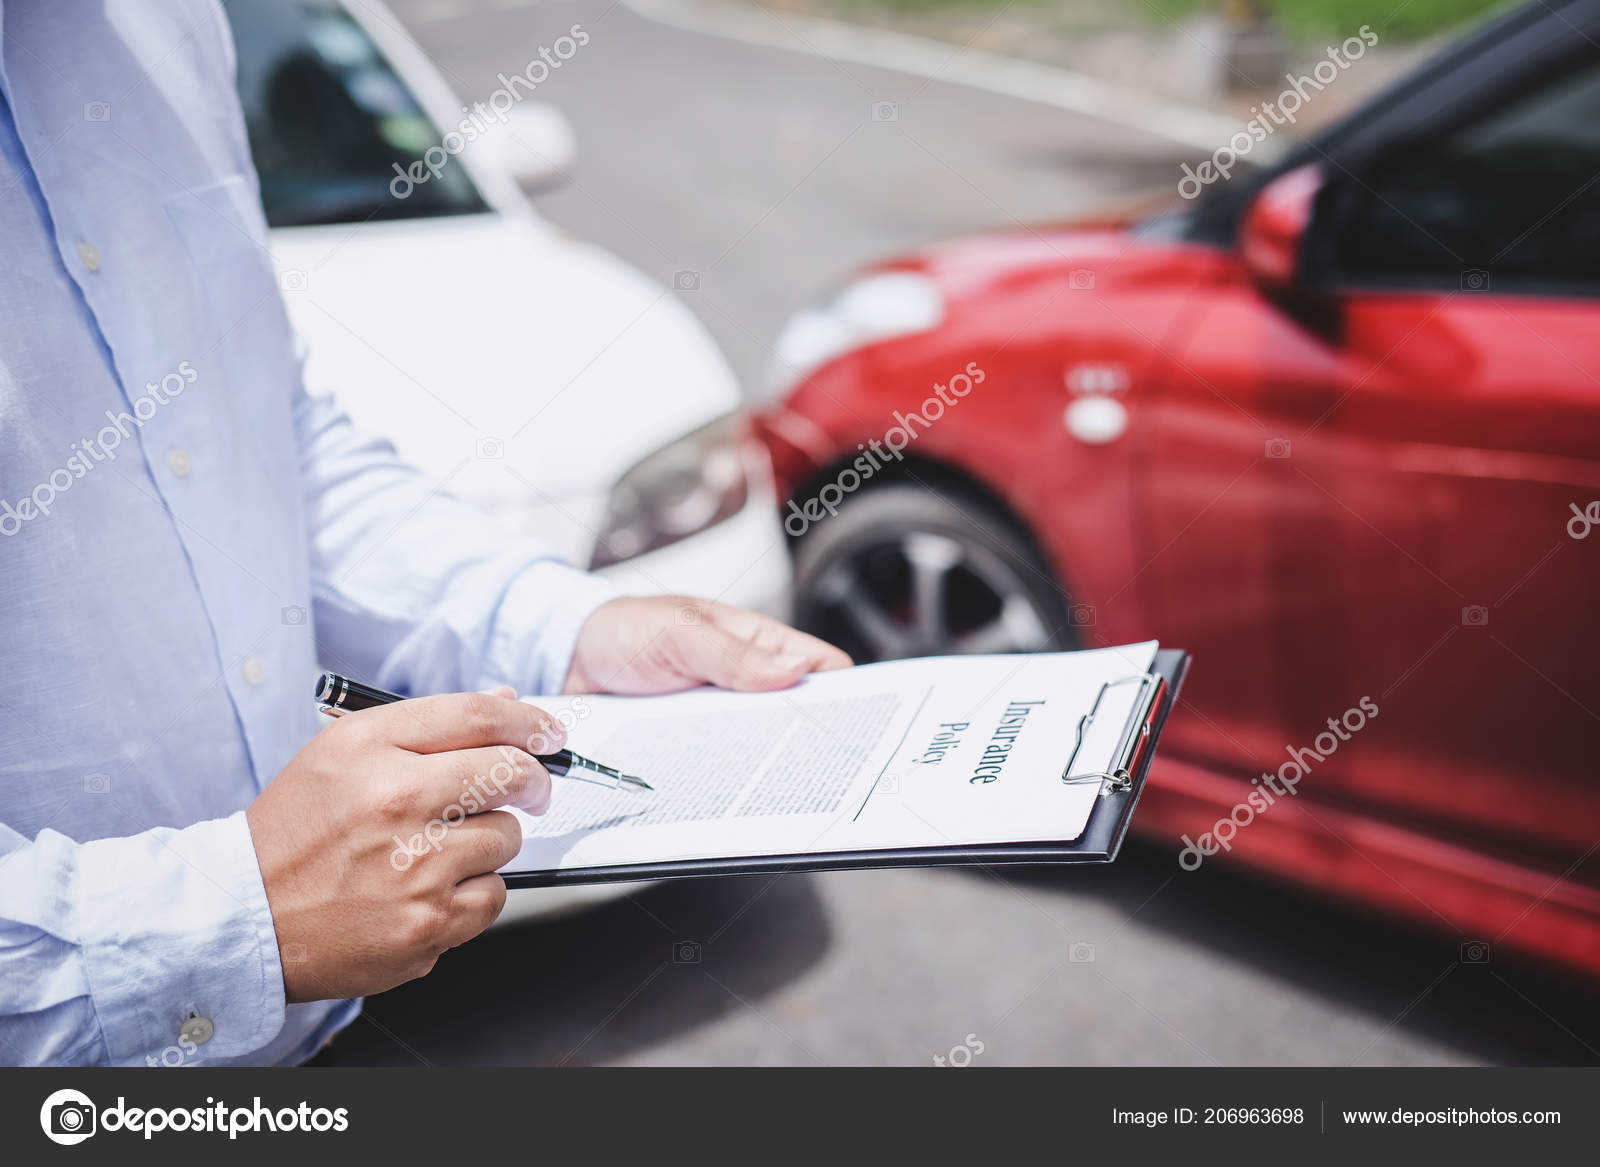 Traffic Accident Insurance Concept Insurance Agent Working Report Form Car Stock Photo Image By C Freedomtumz 206963698